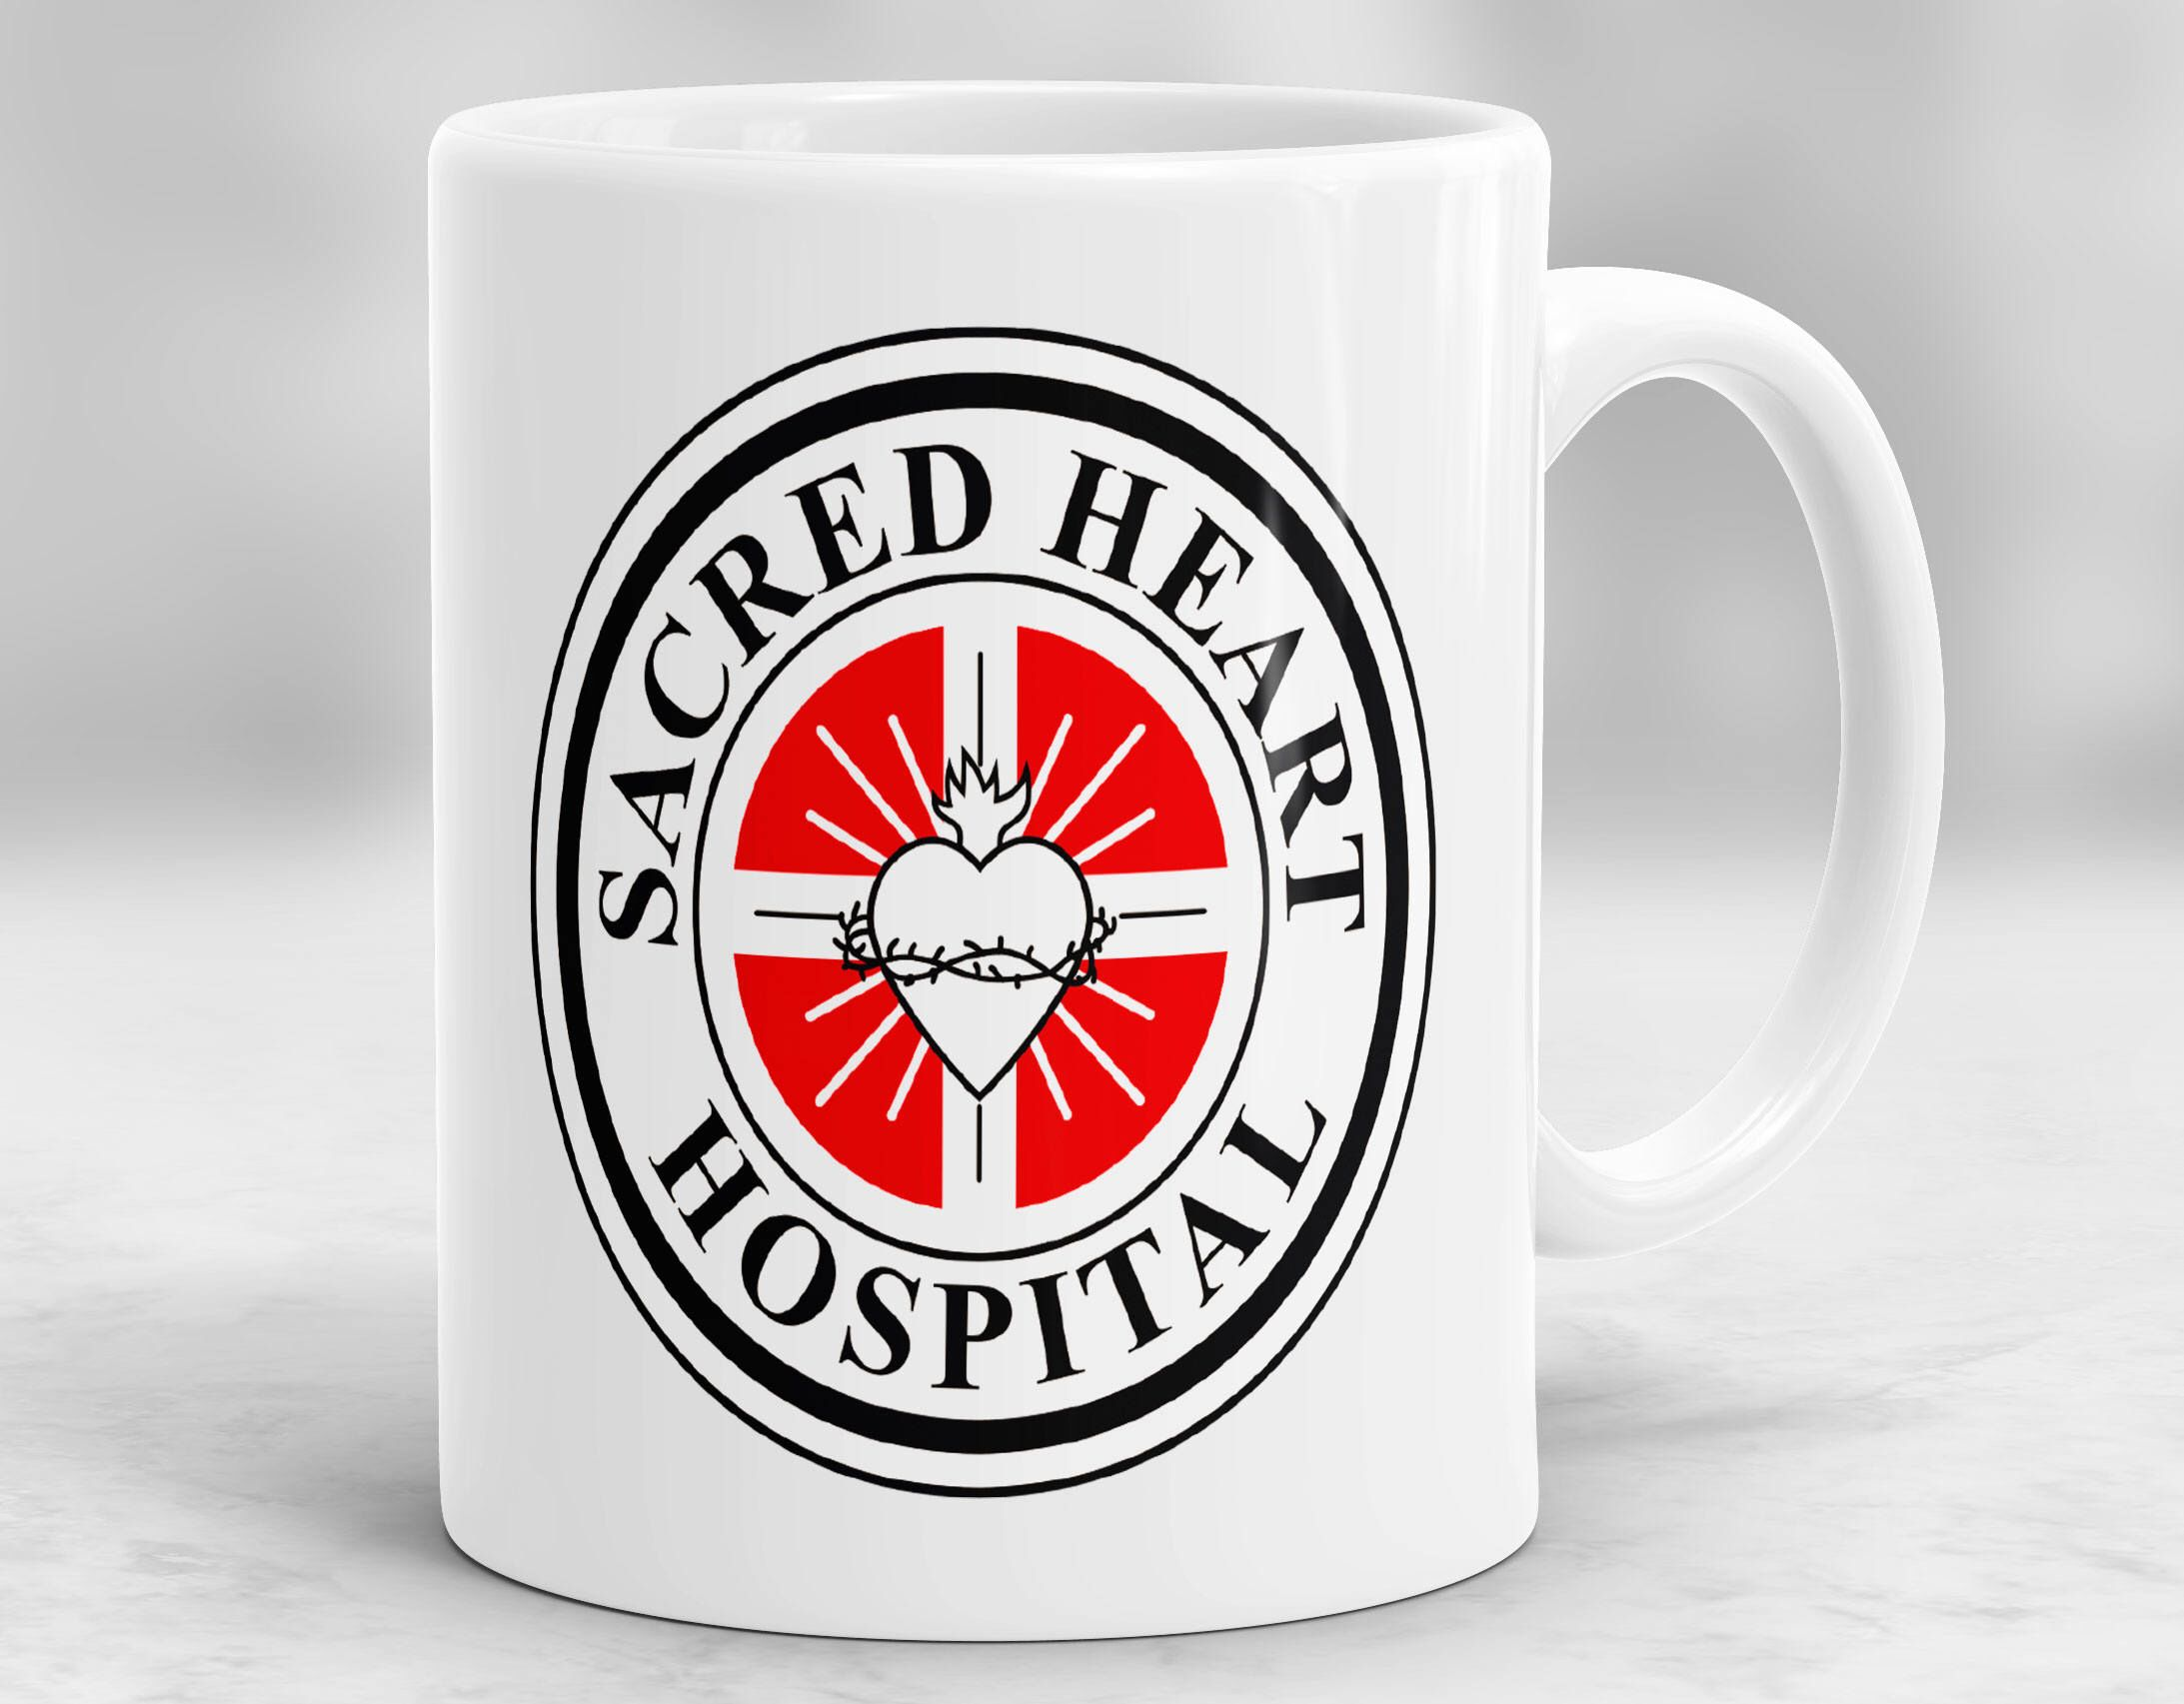 Sacred Heart Hospital Mug Scrubs Mug Tv Series Cup P183 By Mugshopstudio On Etsy Https Www Etsy Com Listing 5764590 Sacred Heart Hospital Mugs Sacred Heart